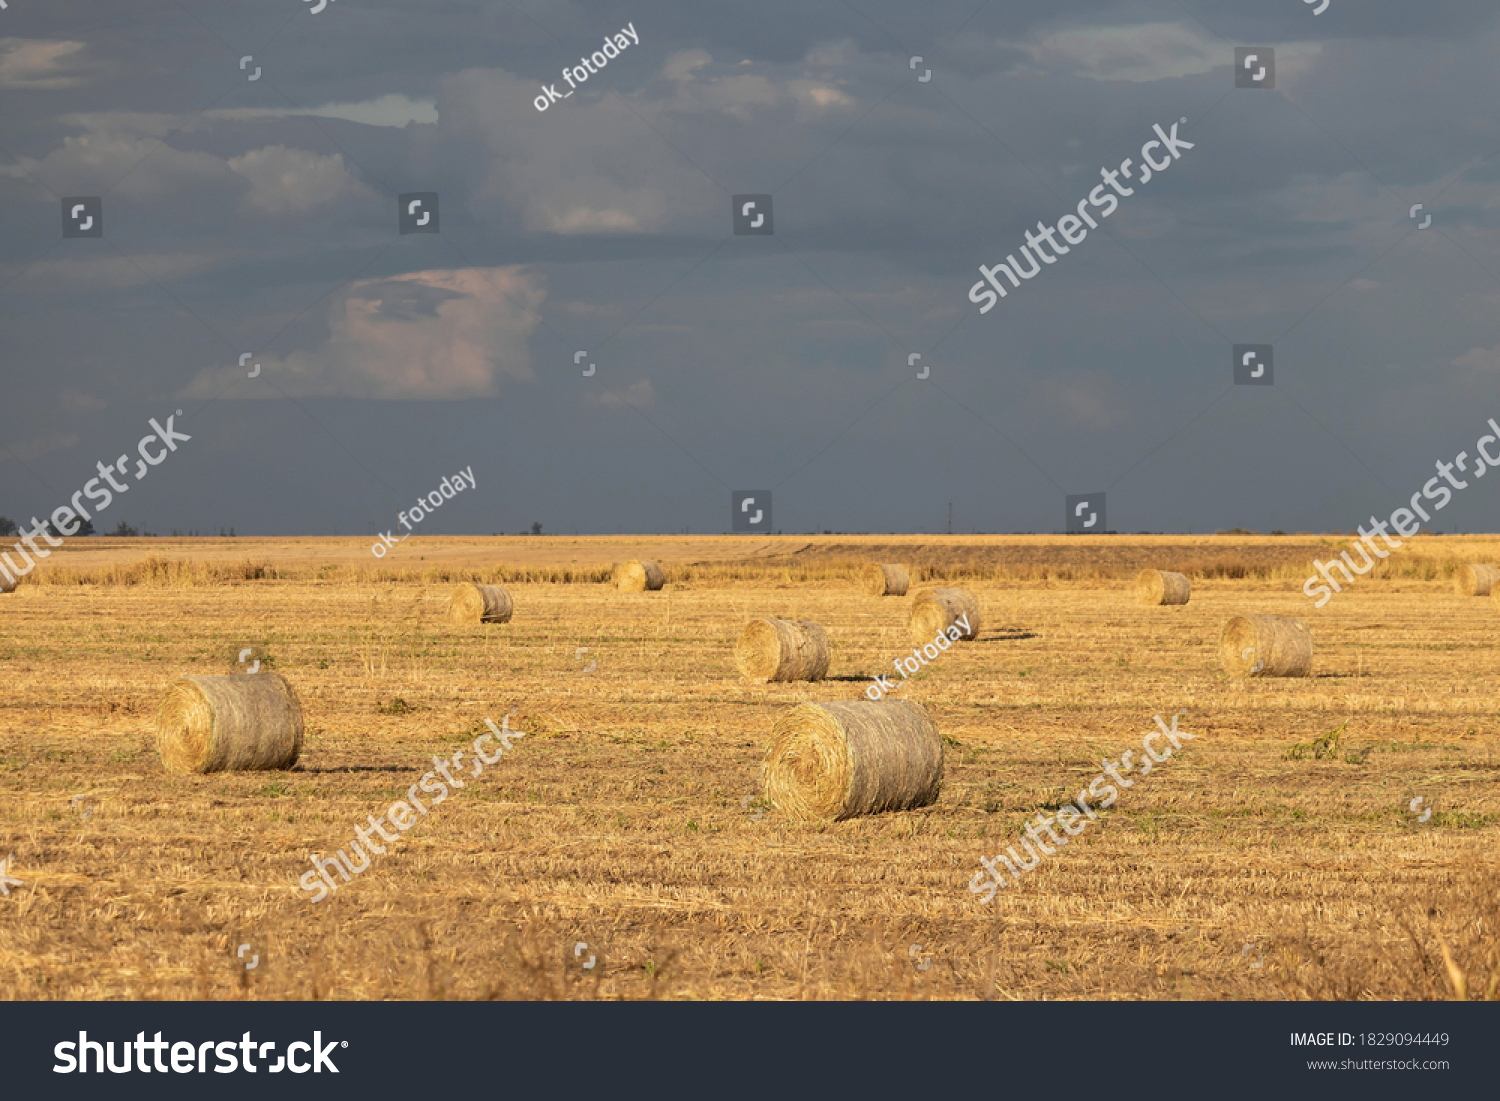 A warm autumn evening: an agricultural field with dry grass and rolls of hay against a cloudy evening sky